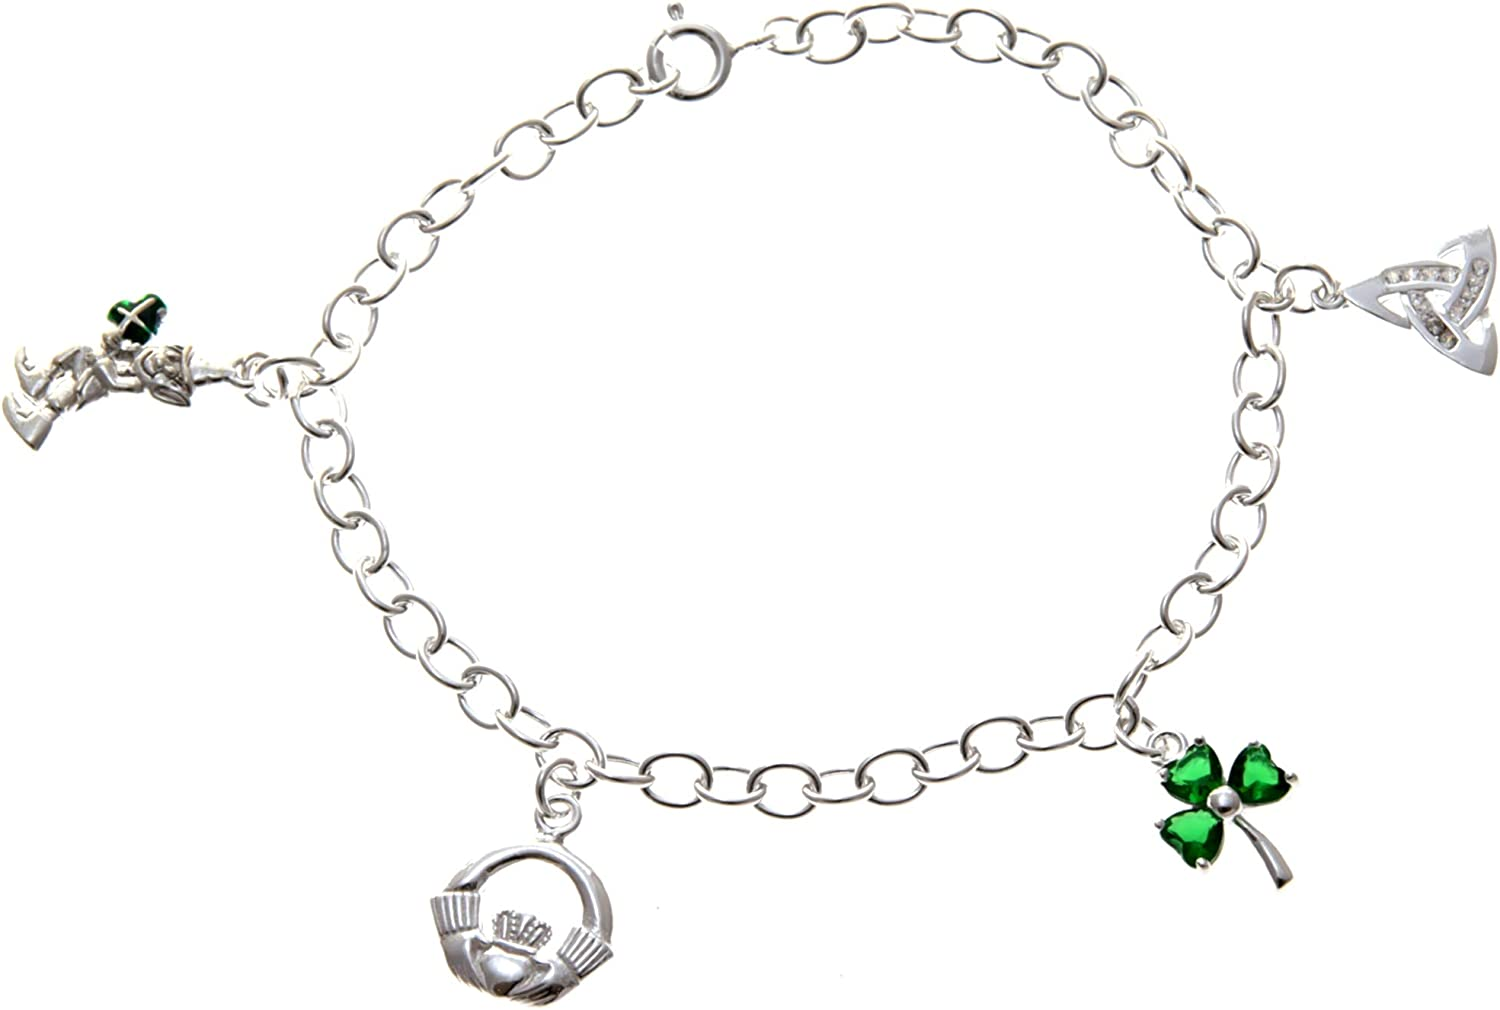 Alexander Castle Sterling Silver Irish Charm Bracelet with Leprechaun, Claddagh, Shamrock and Trinity Charms. Comes in a Jewelry Presentation Gift Box